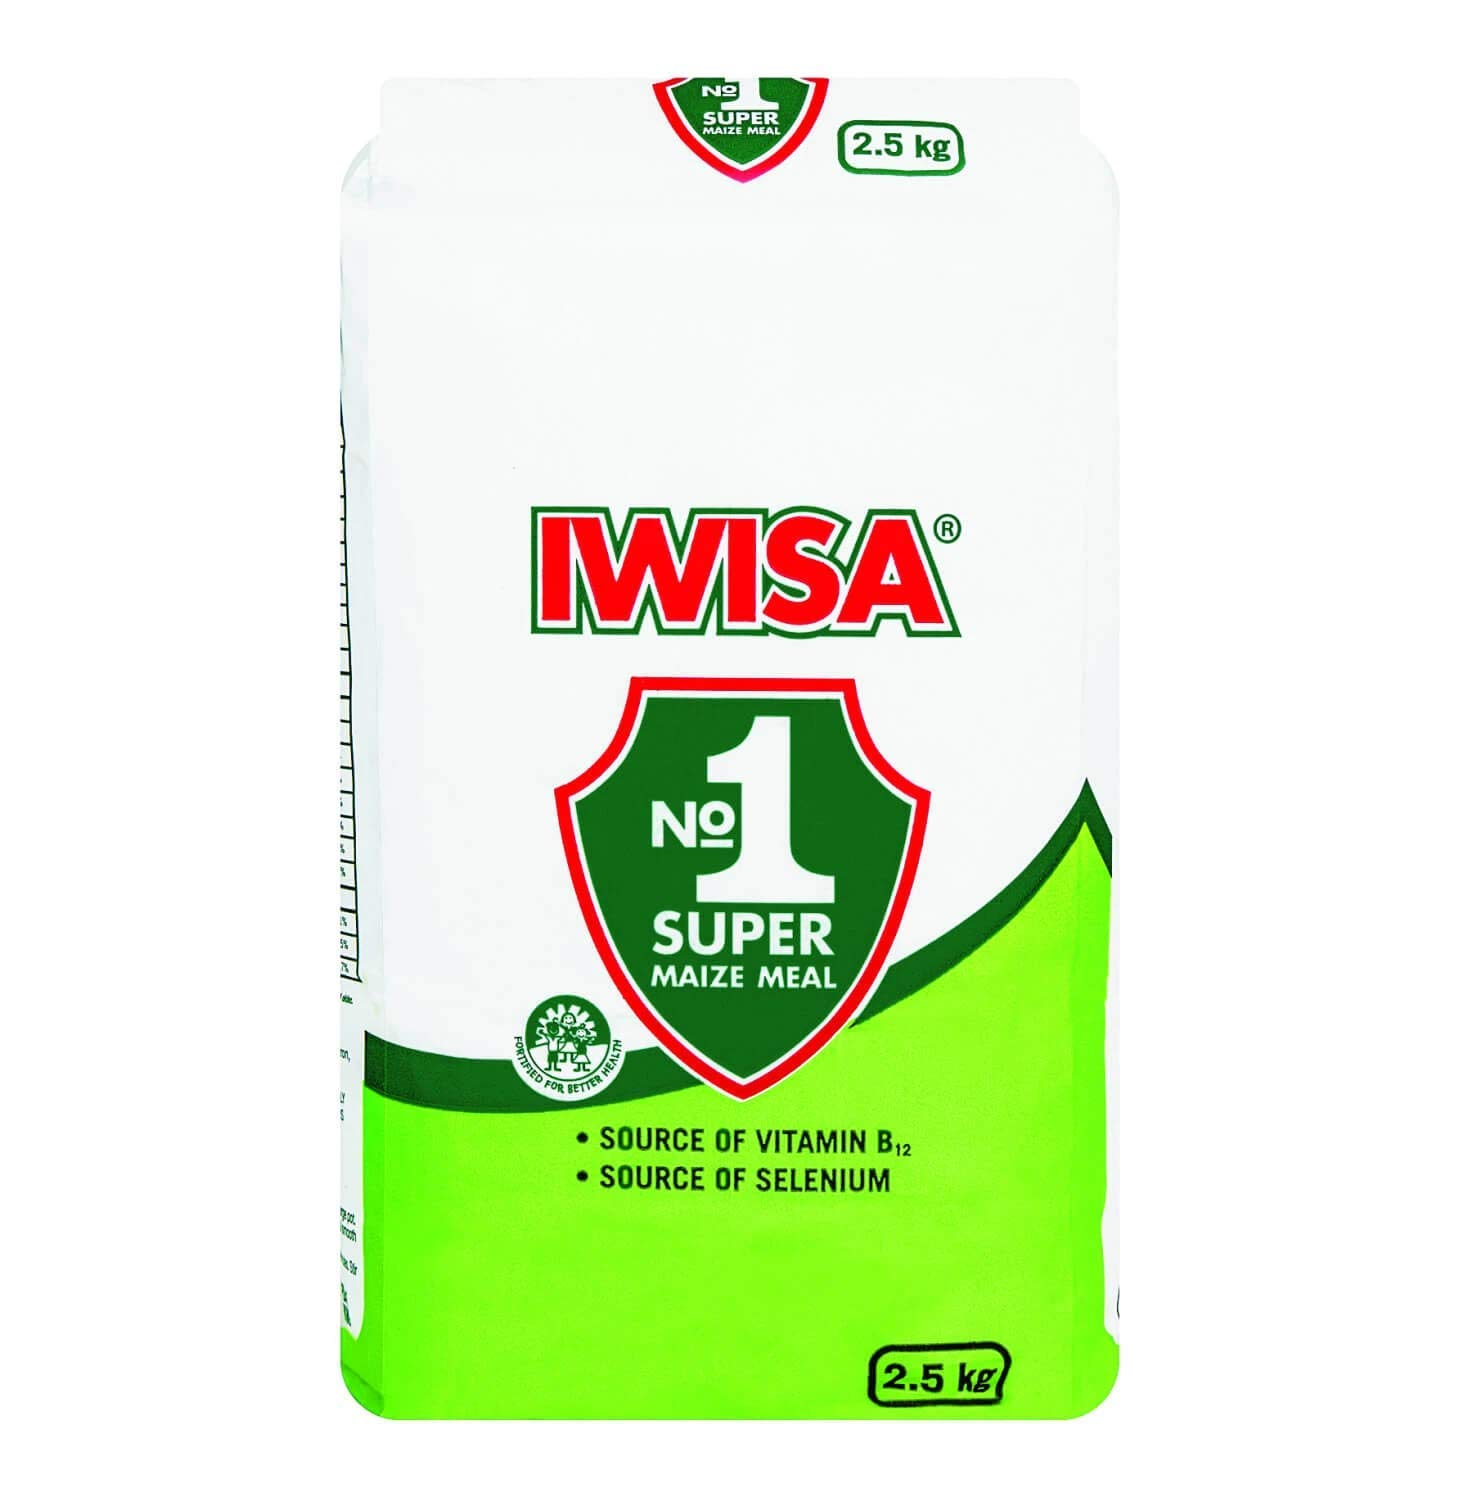 Iwisa Super Maize Meal - 1kg